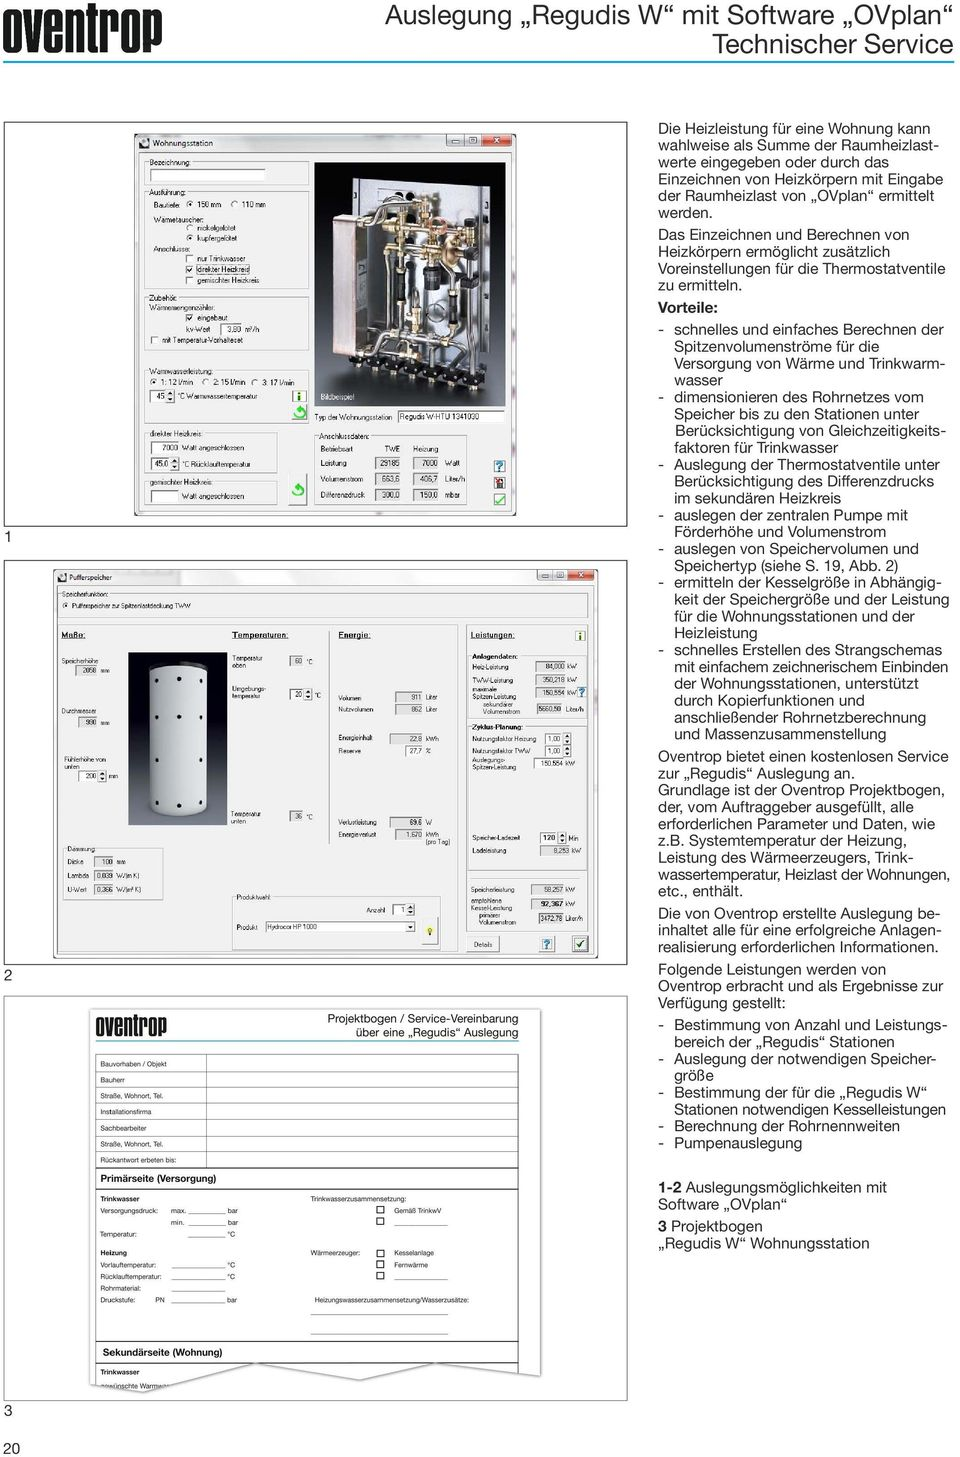 premium armaturen systeme regudis w wohnungsstationen pdf. Black Bedroom Furniture Sets. Home Design Ideas